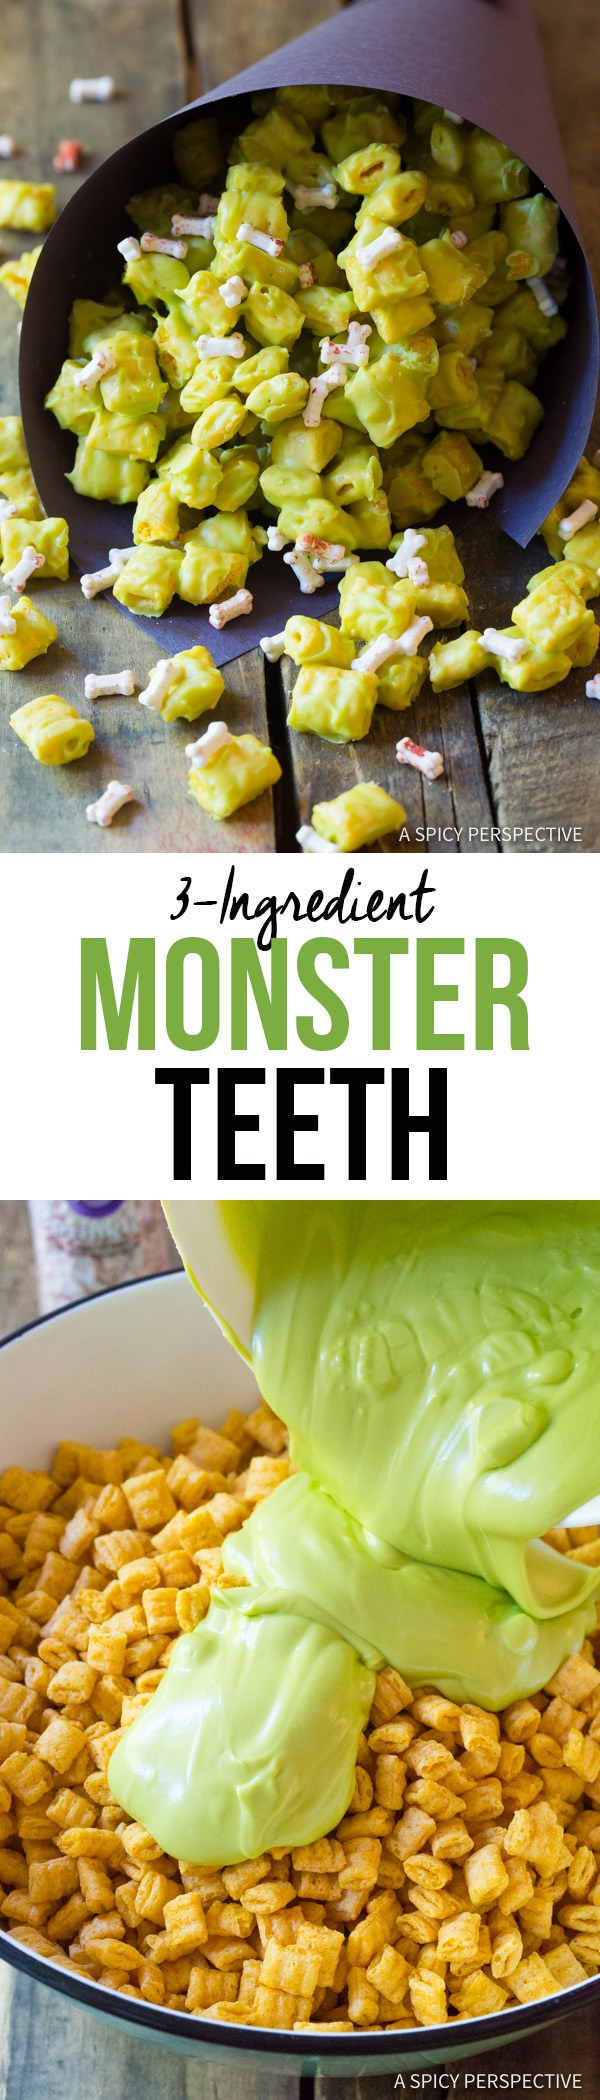 Get the recipe Monster Teeth @recipes_to_go